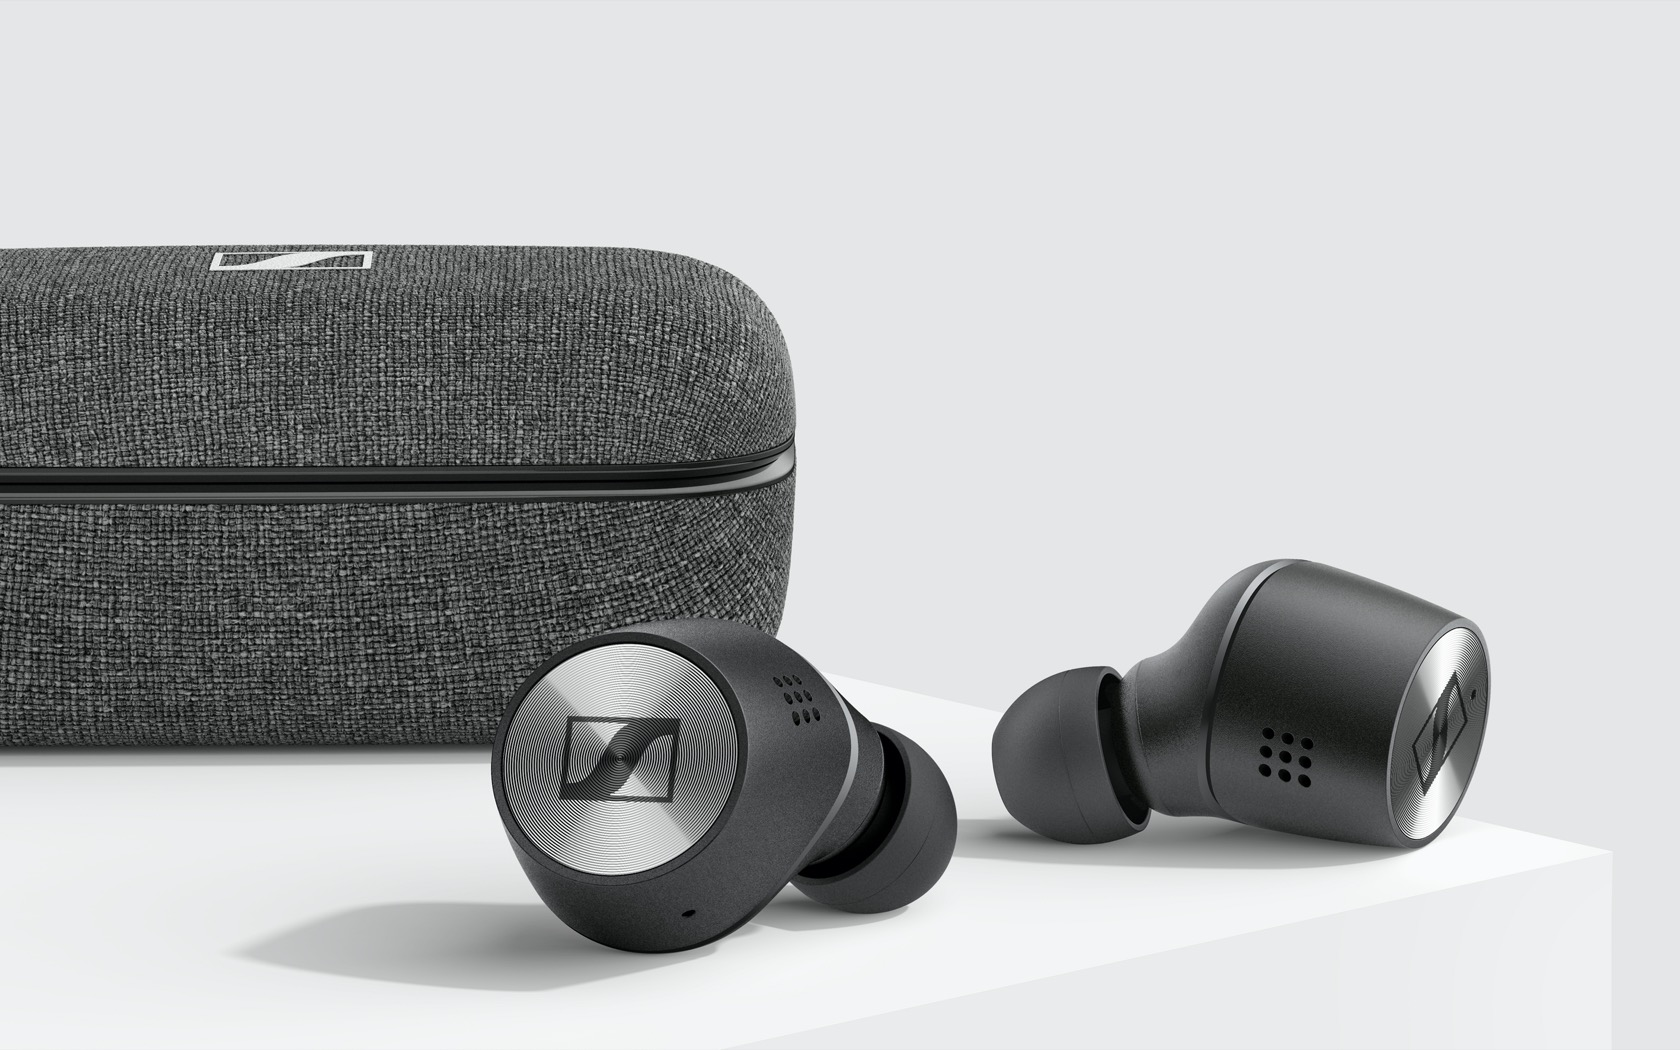 Sennheiser's new wireless earbuds offer an ANC alternative to AirPods Pro - SlashGear